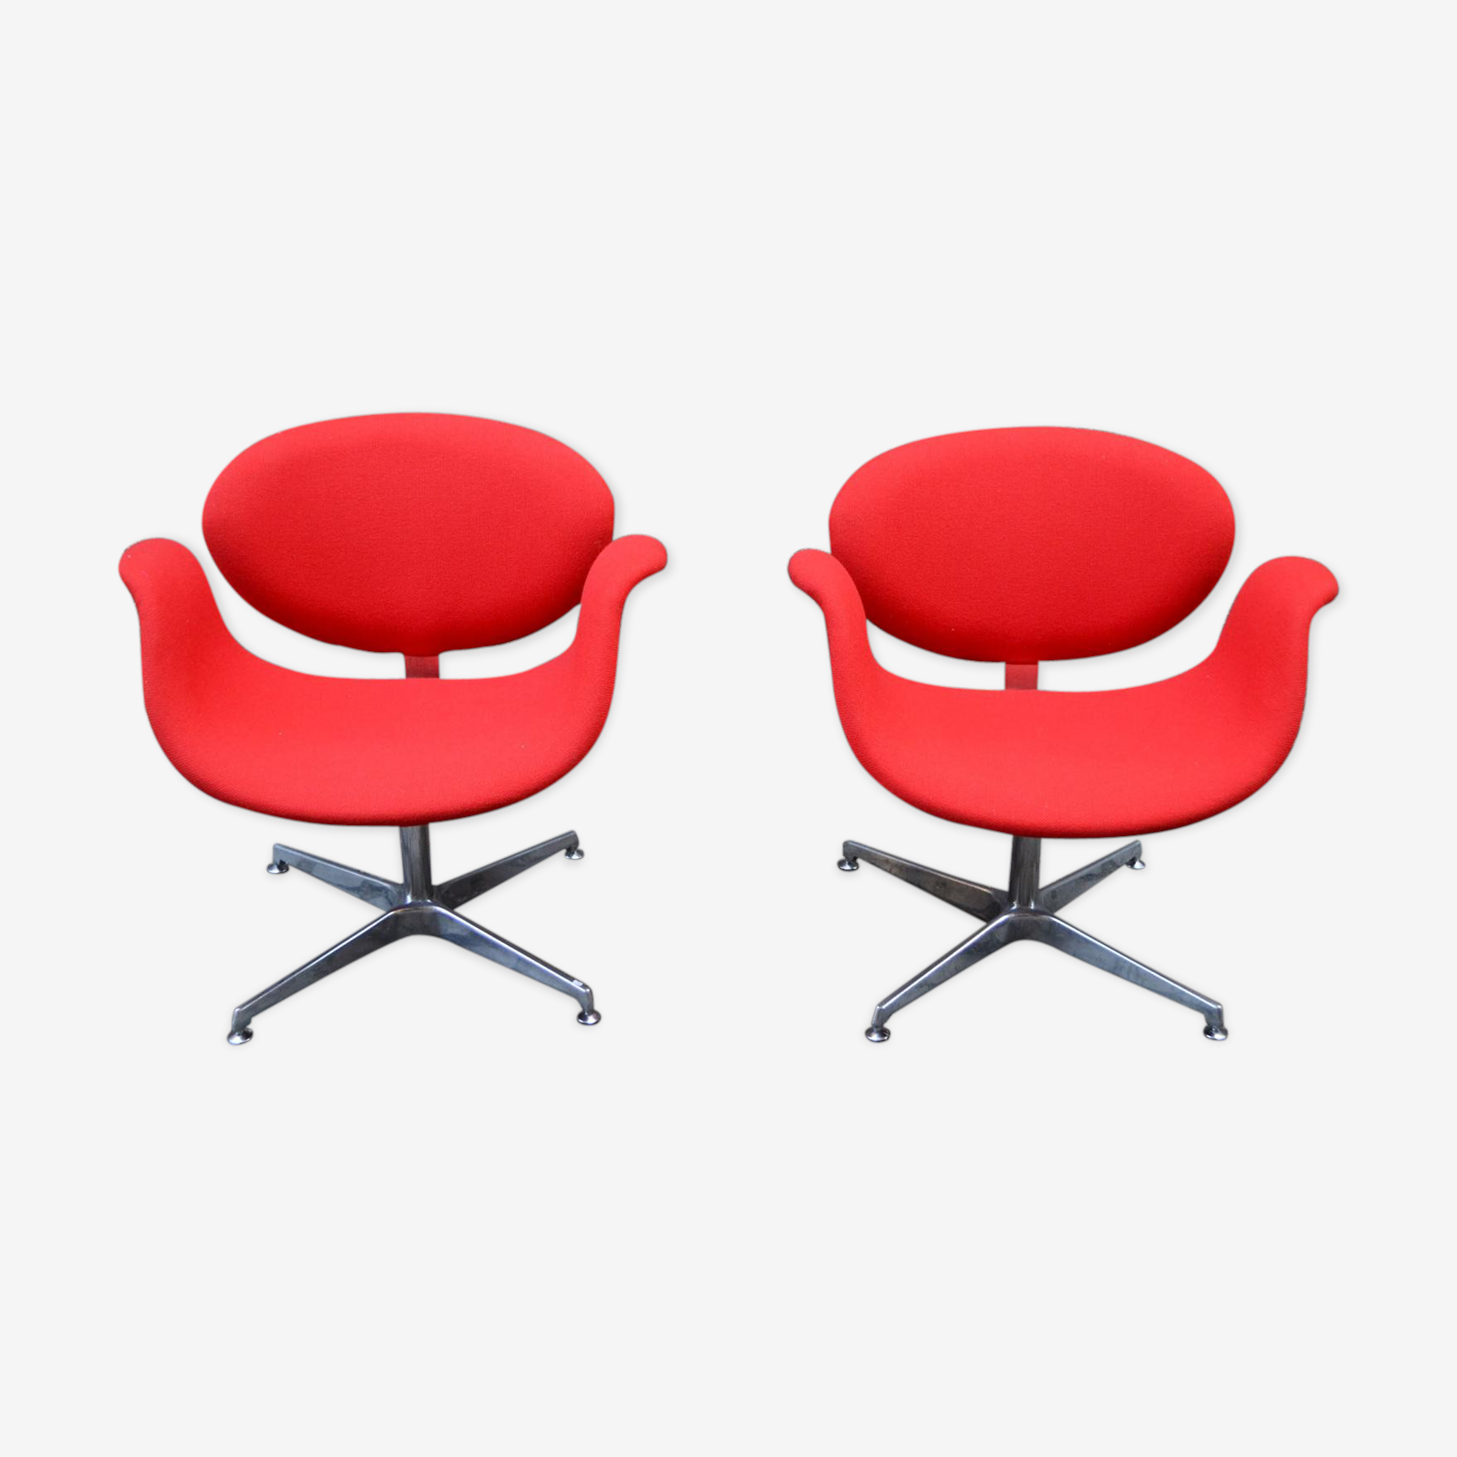 Lot of two tulip armchairs by Pierre Paulin for Artifort, 1960